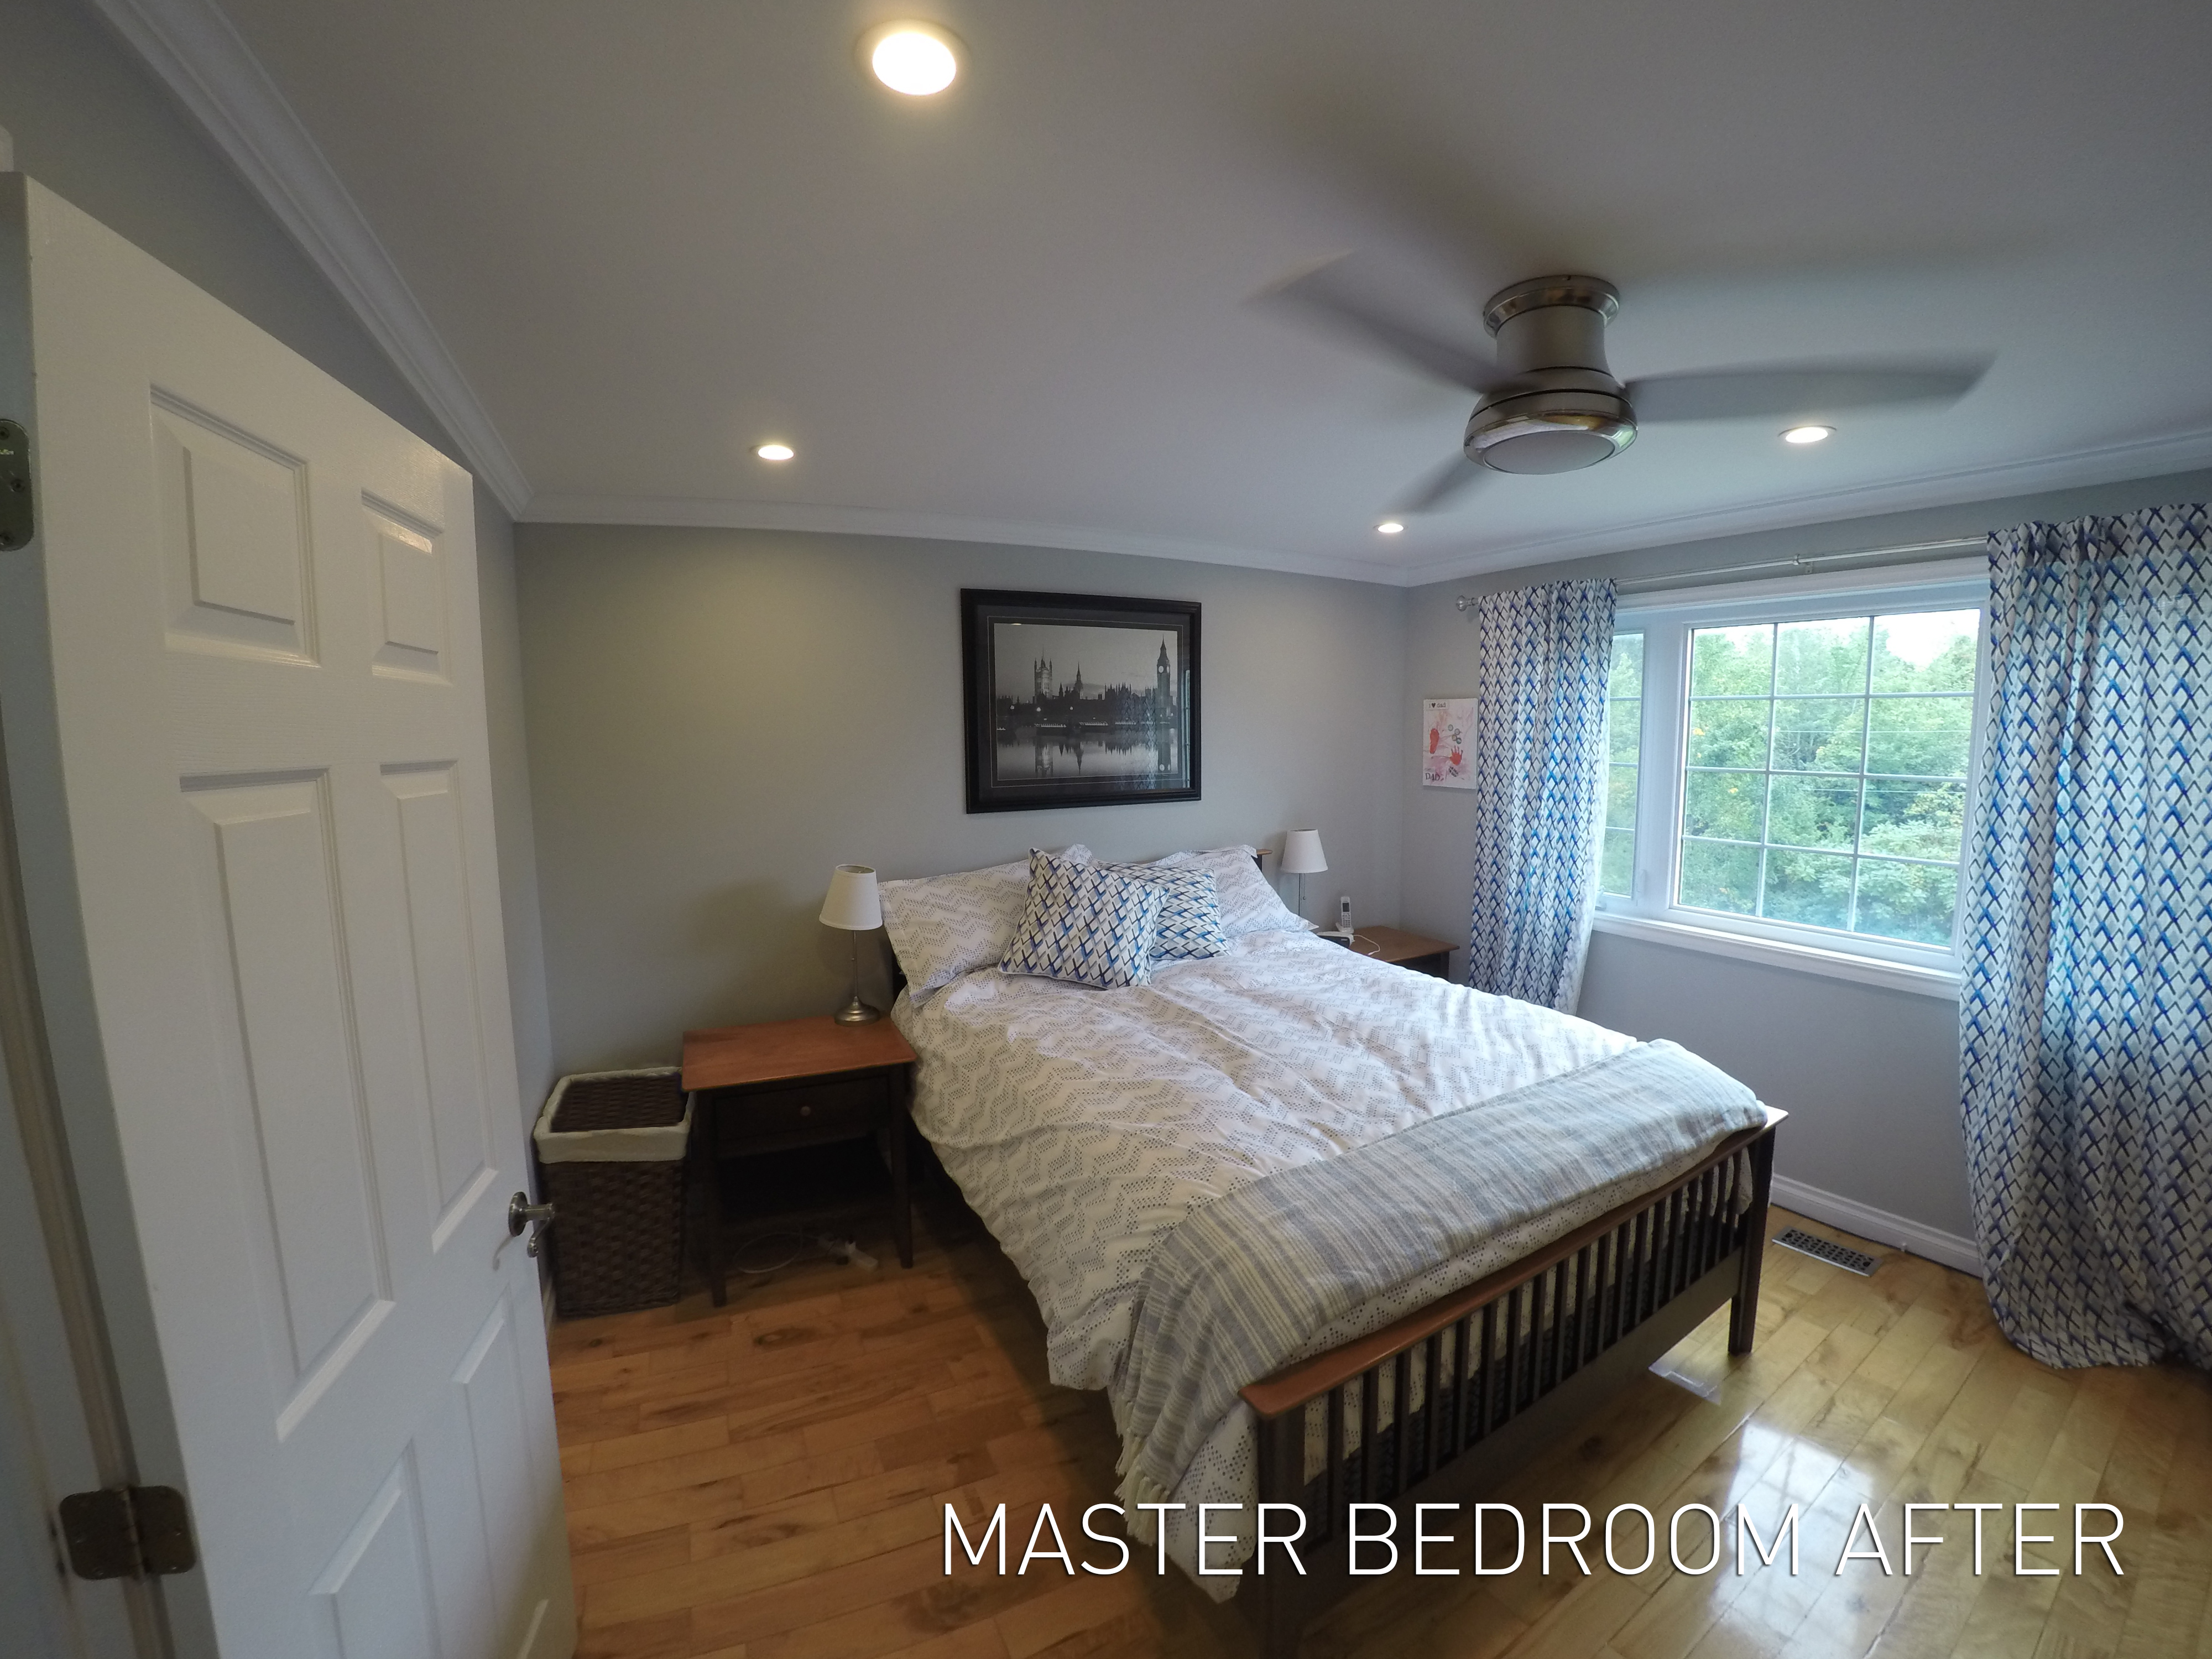 BroLaws Master Bedroom After